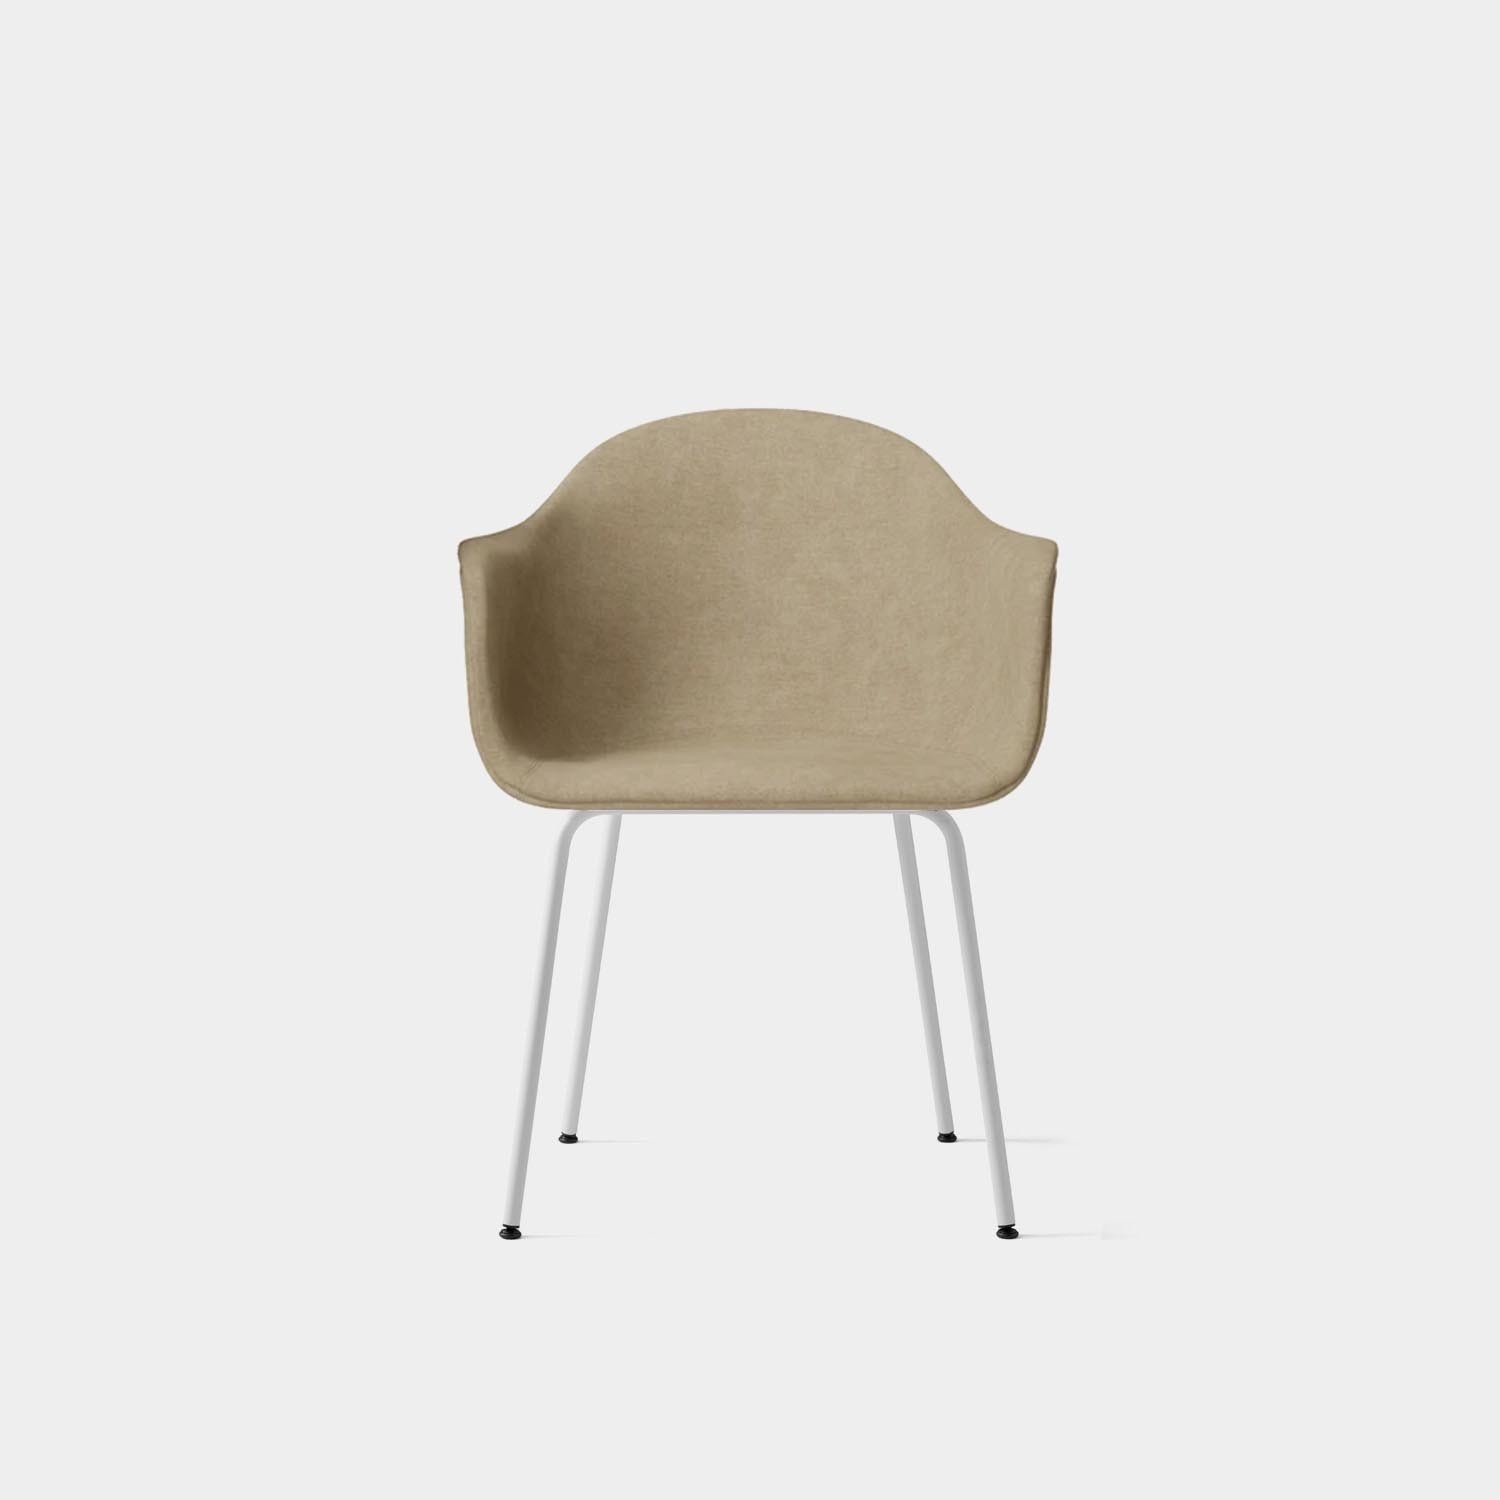 Chair Harbour, White Base, Beige Wool